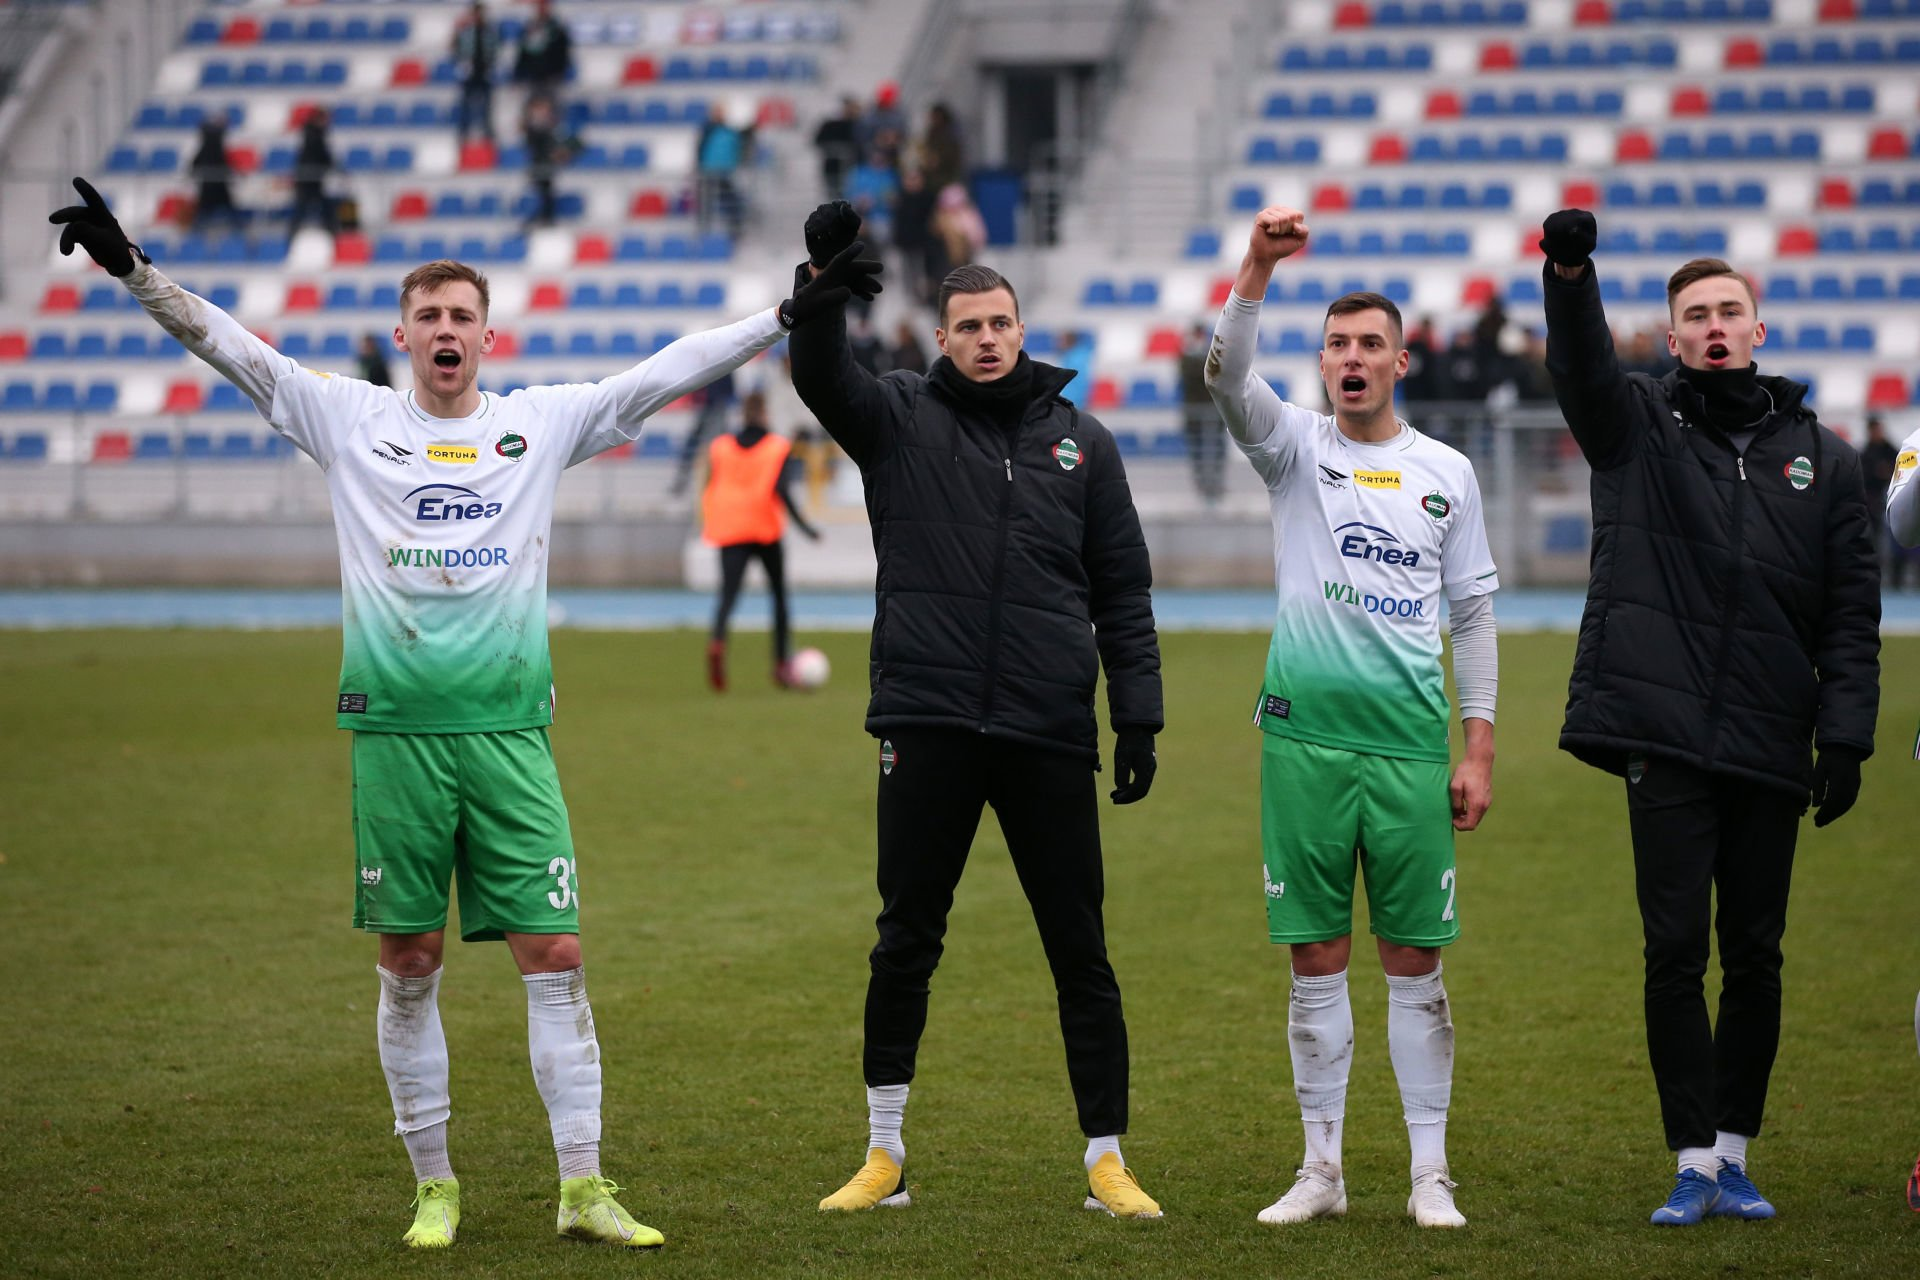 RADOM 01.12.2019 MECZ 20. KOLEJKA FORTUNA I LIGA SEZON 2019/20 --- POLISH FIRST LEAGUE FOOTBALL MATCH: RADOMIAK RADOM - GKS BELCHATOW 2:0 DAWID ABRAMOWICZ MARTIN KLABNIK DAMIAN NOWAK ADRIAN NOWOSADKO FOT. PIOTR KUCZA/ 400mm.pl